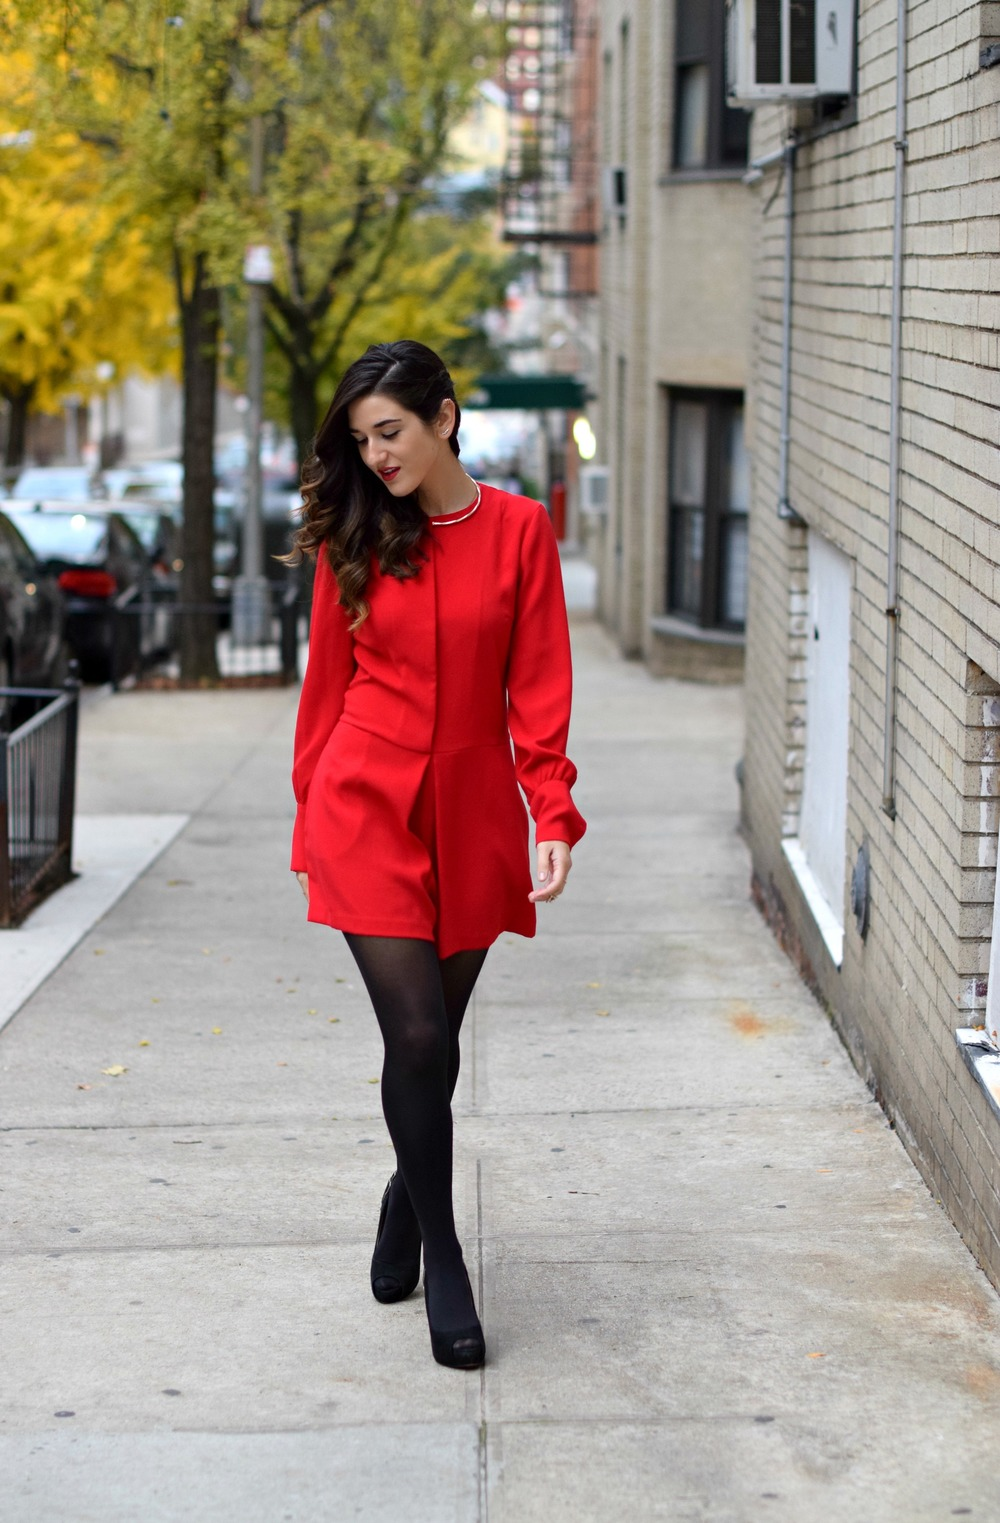 Red Romper Black Tights Louboutins & Love Fashion Blog Esther Santer NYC Street Style Blogger Winter Fall Look Shoes Heels Zara Gold Collar Necklace Braid Hair Inspo Outfit OOTD Photoshoot NYC Girl Women Stiletto Wear Shop  Clothing Model Accessories.jpg